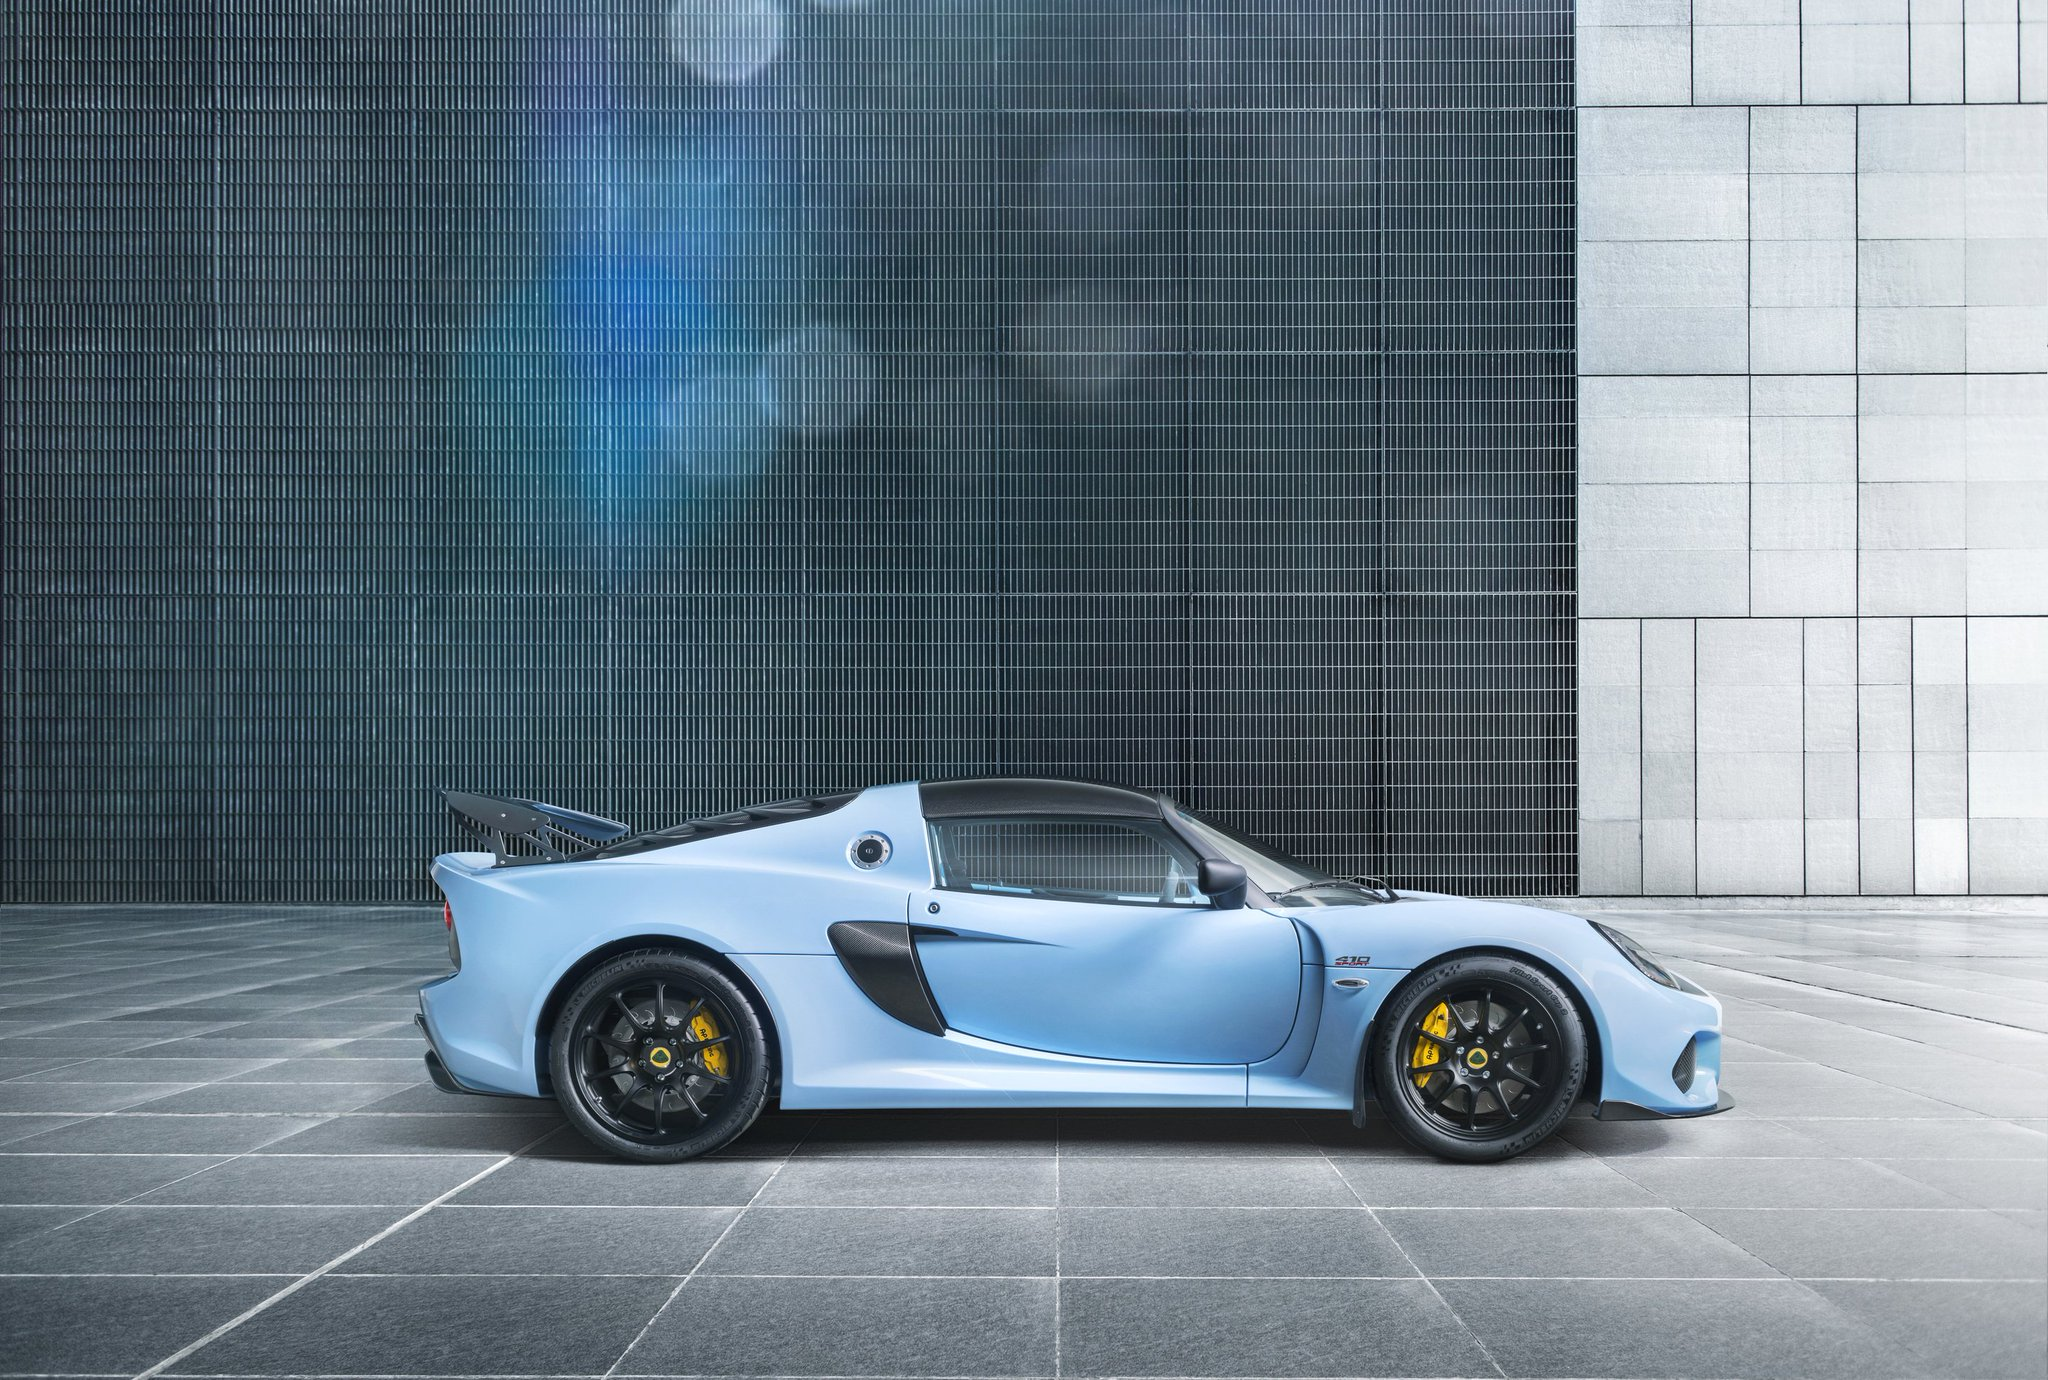 As with all Lotus cars, the Exige Sport 410 has outstanding handling and lightweight agility engineered into its very DNA. #Lotus70 #LightisRight #Performance https://t.co/ekNcnI3yD7